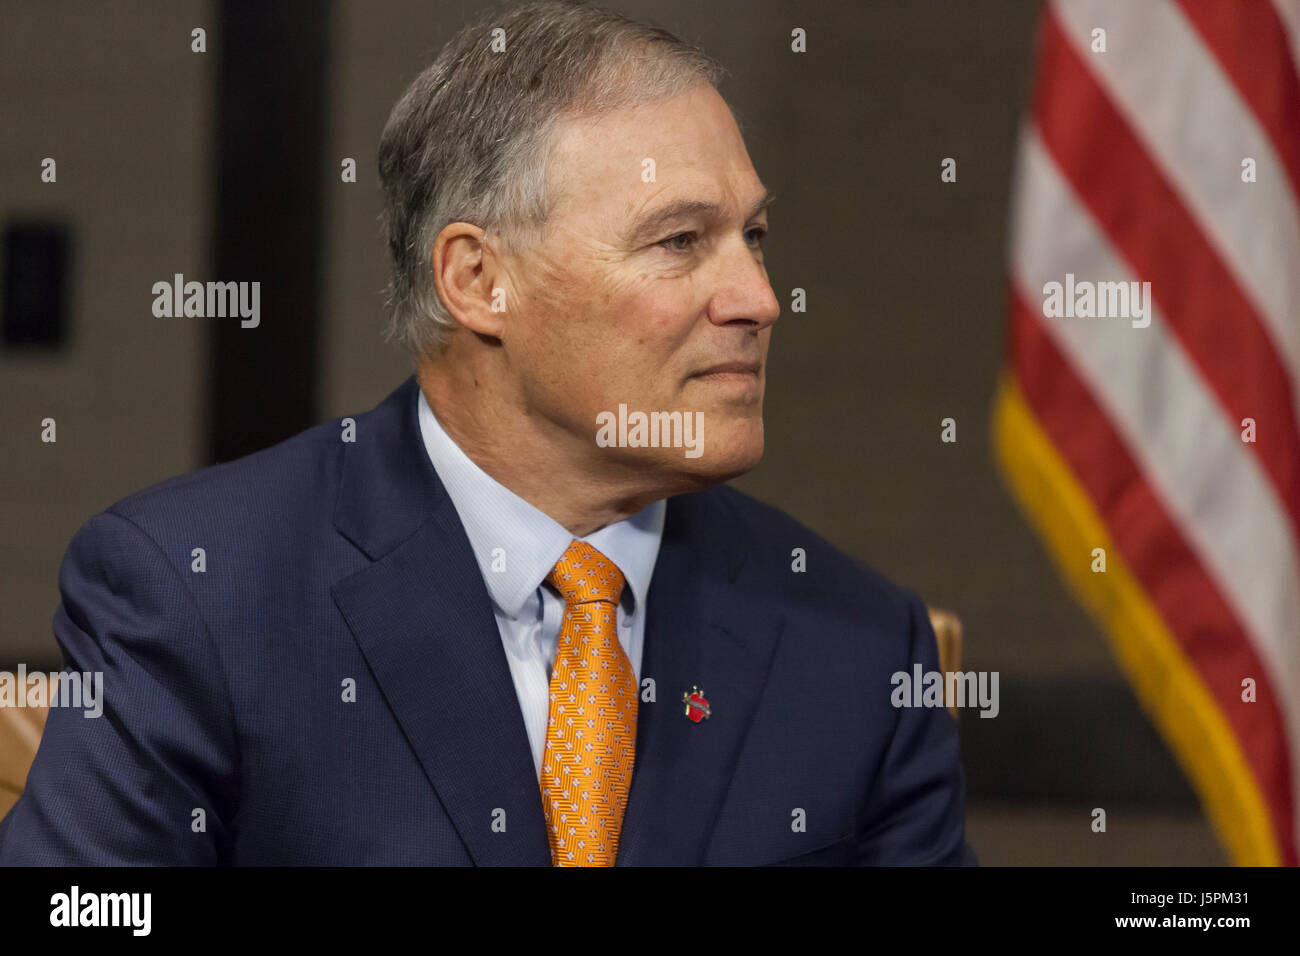 Seattle, Washington: Canadian Prime Minister Justin Trudeau meets with Governor Jay Inslee to discuss issues relevant - Stock Image